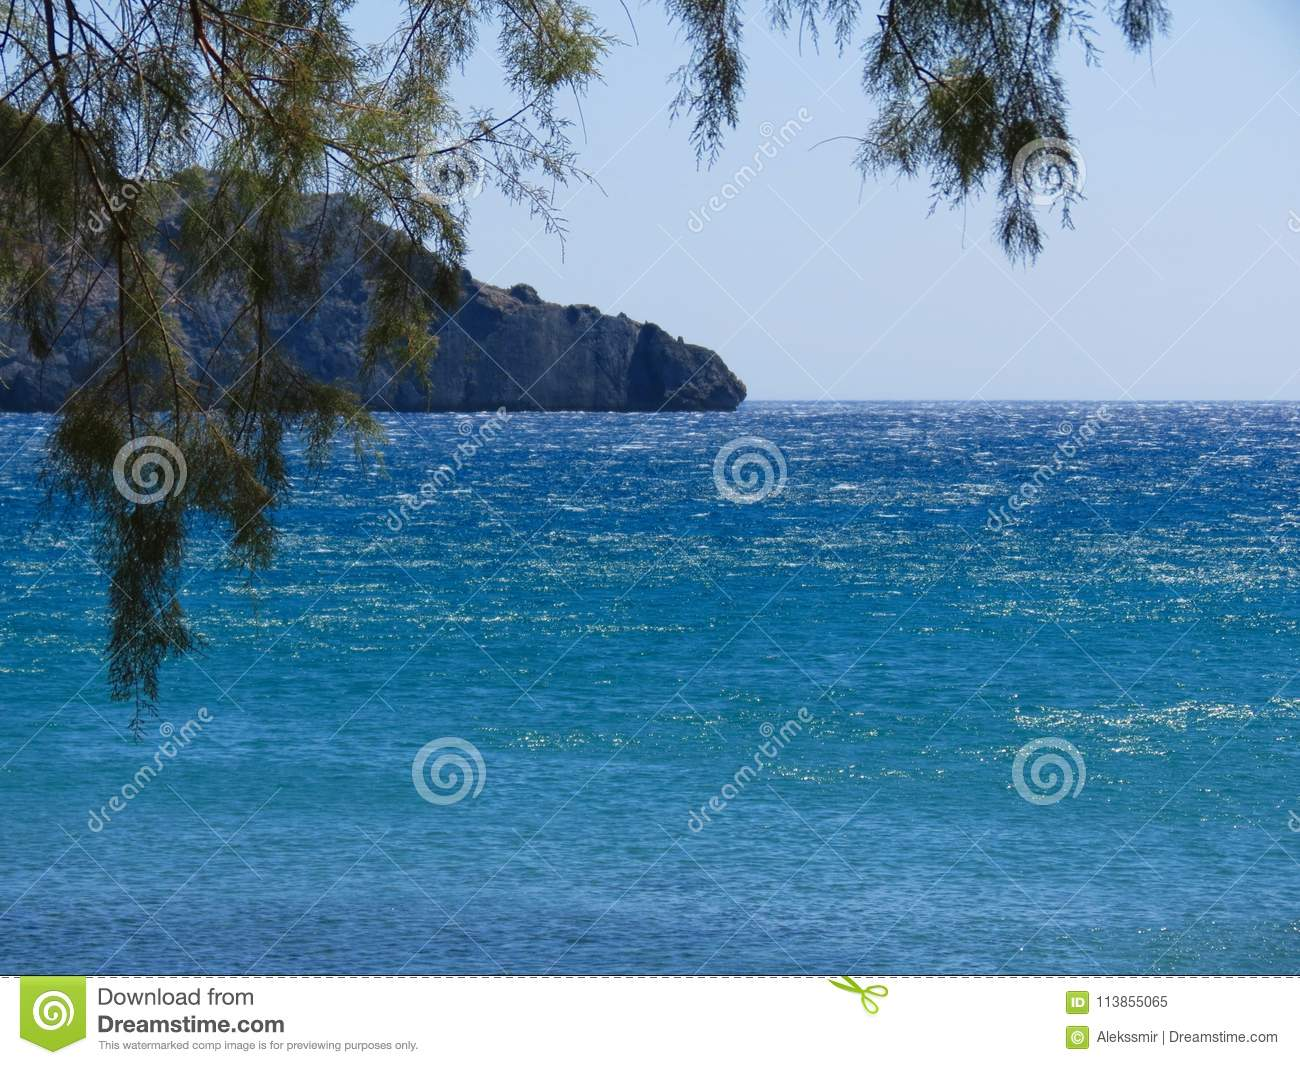 Landscapes of the Southern Crete